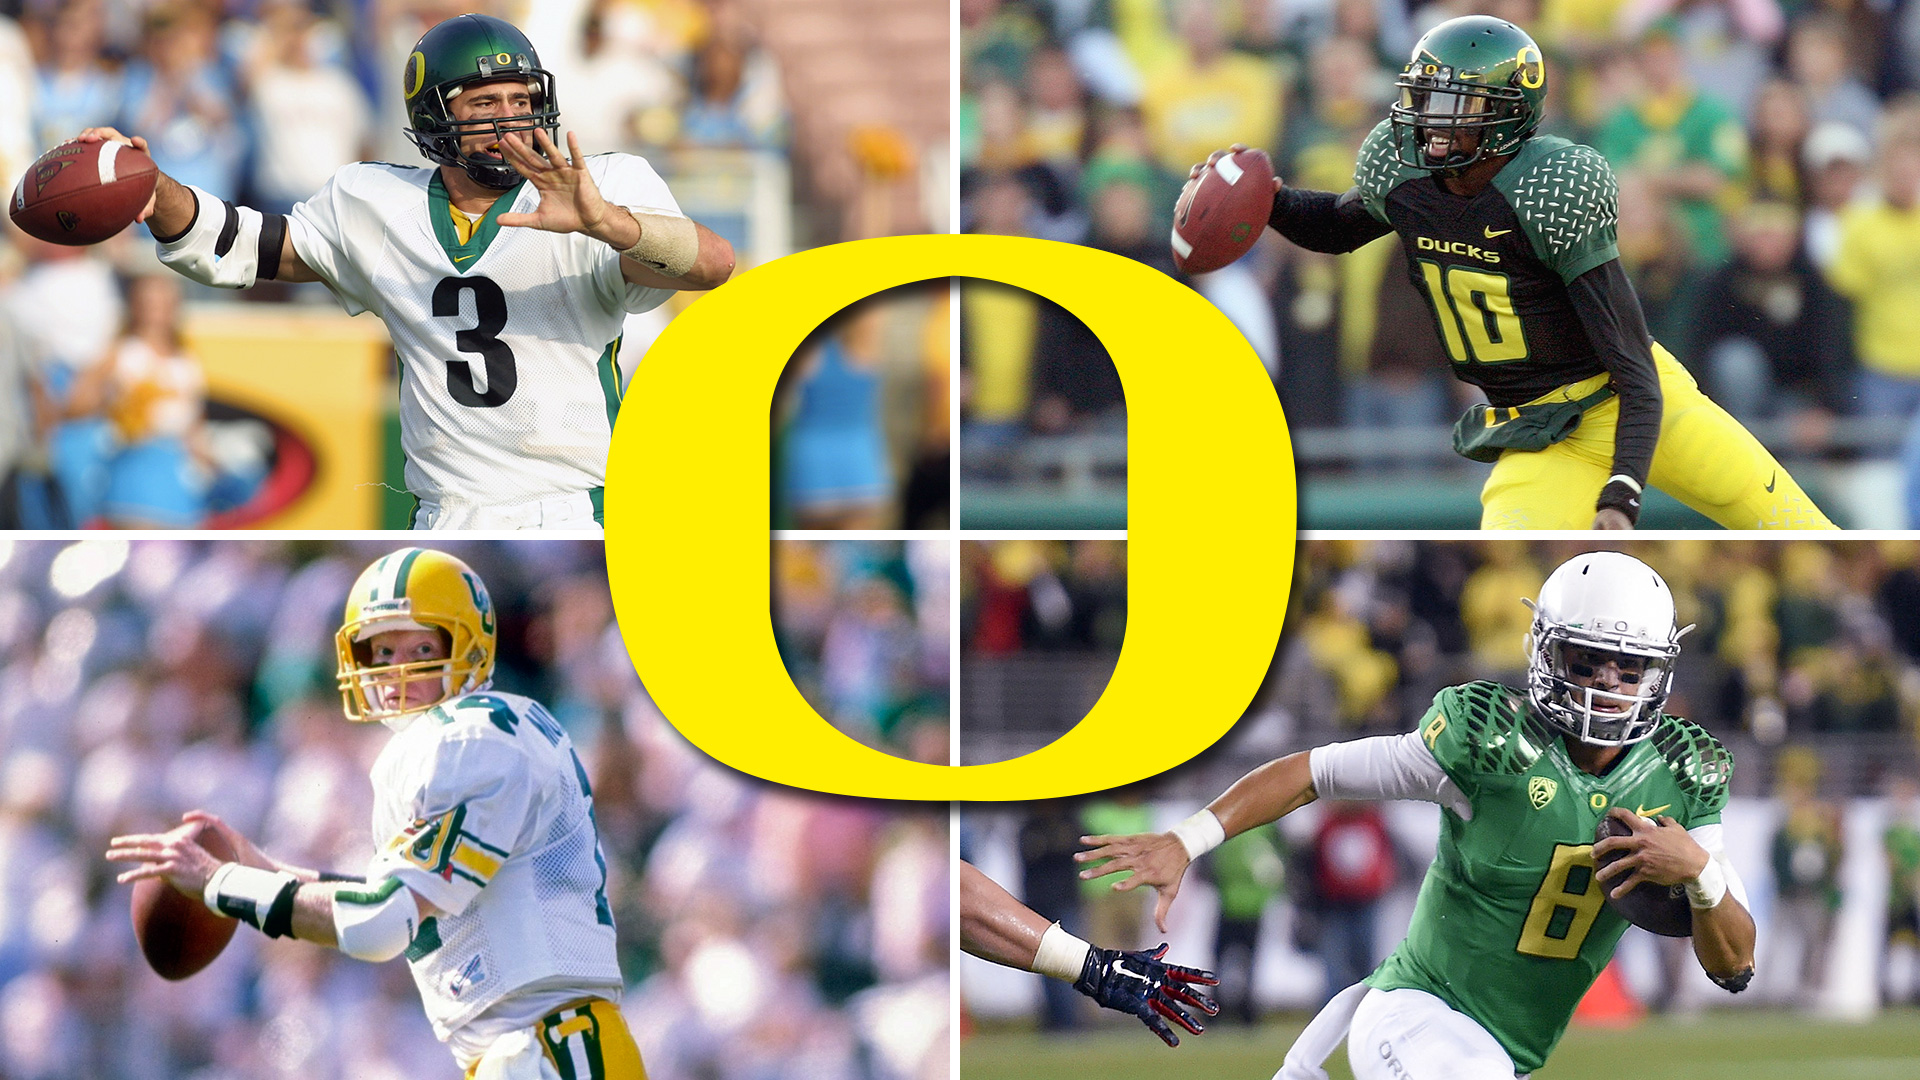 Oregon-Qbs-010815-GETTY-FTR.jpg